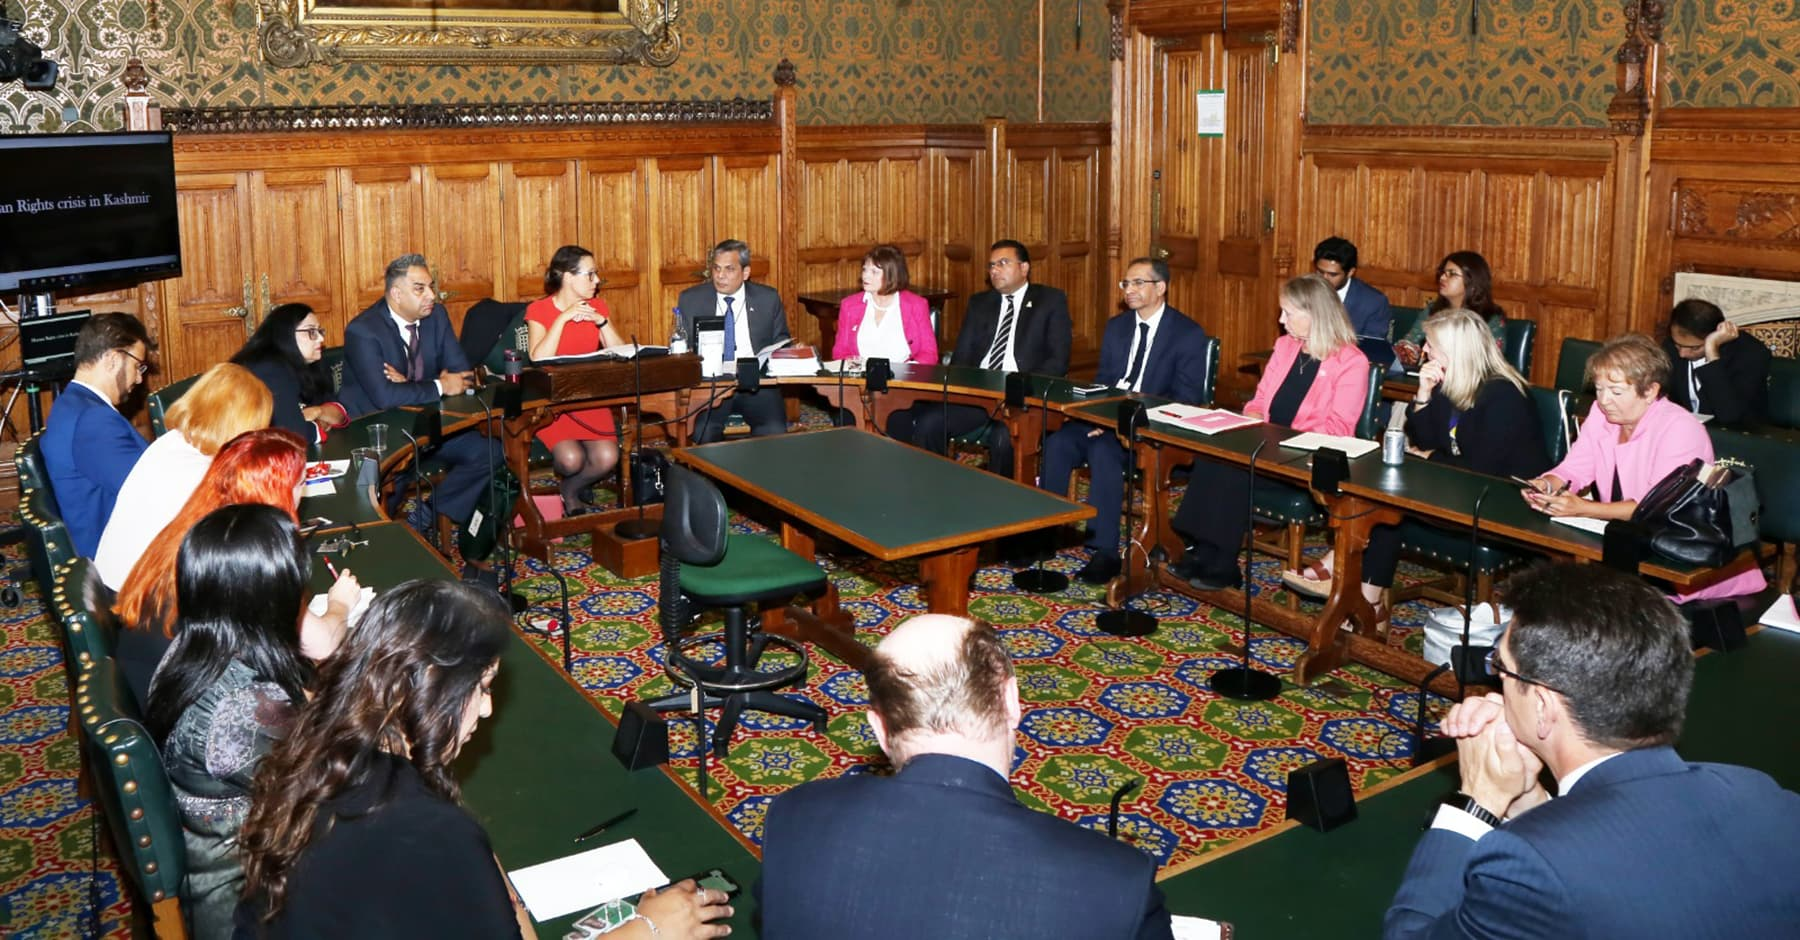 The high commissioner briefing a large number of British parliamentarians at the House of Commons in London on Wednesday. — Pakistan High Commission in London